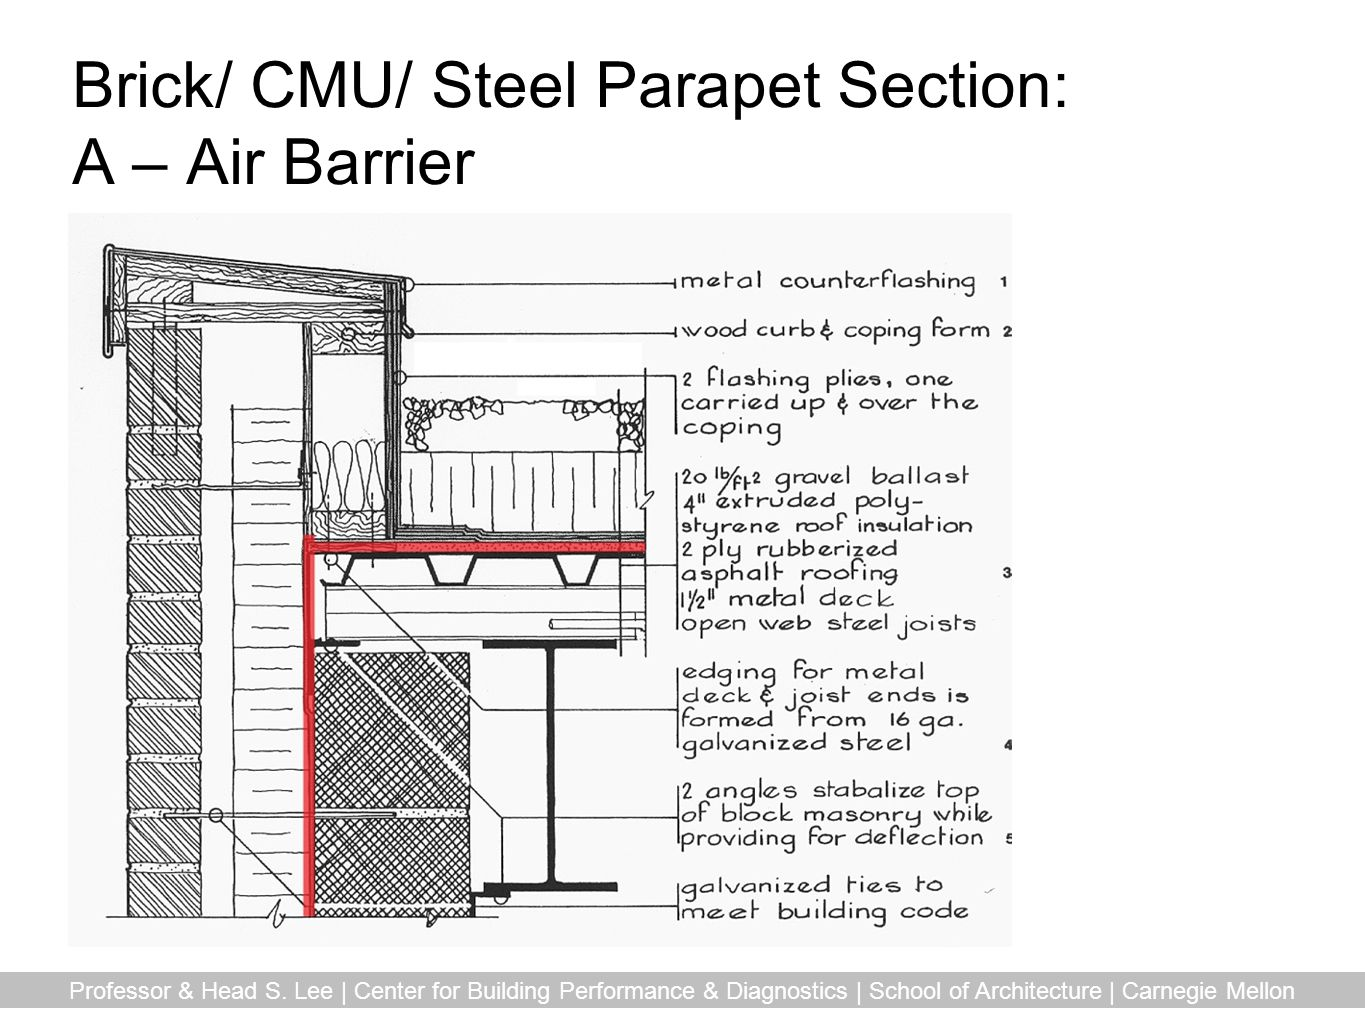 Brick/ CMU/ Steel Parapet Section: A – Air Barrier